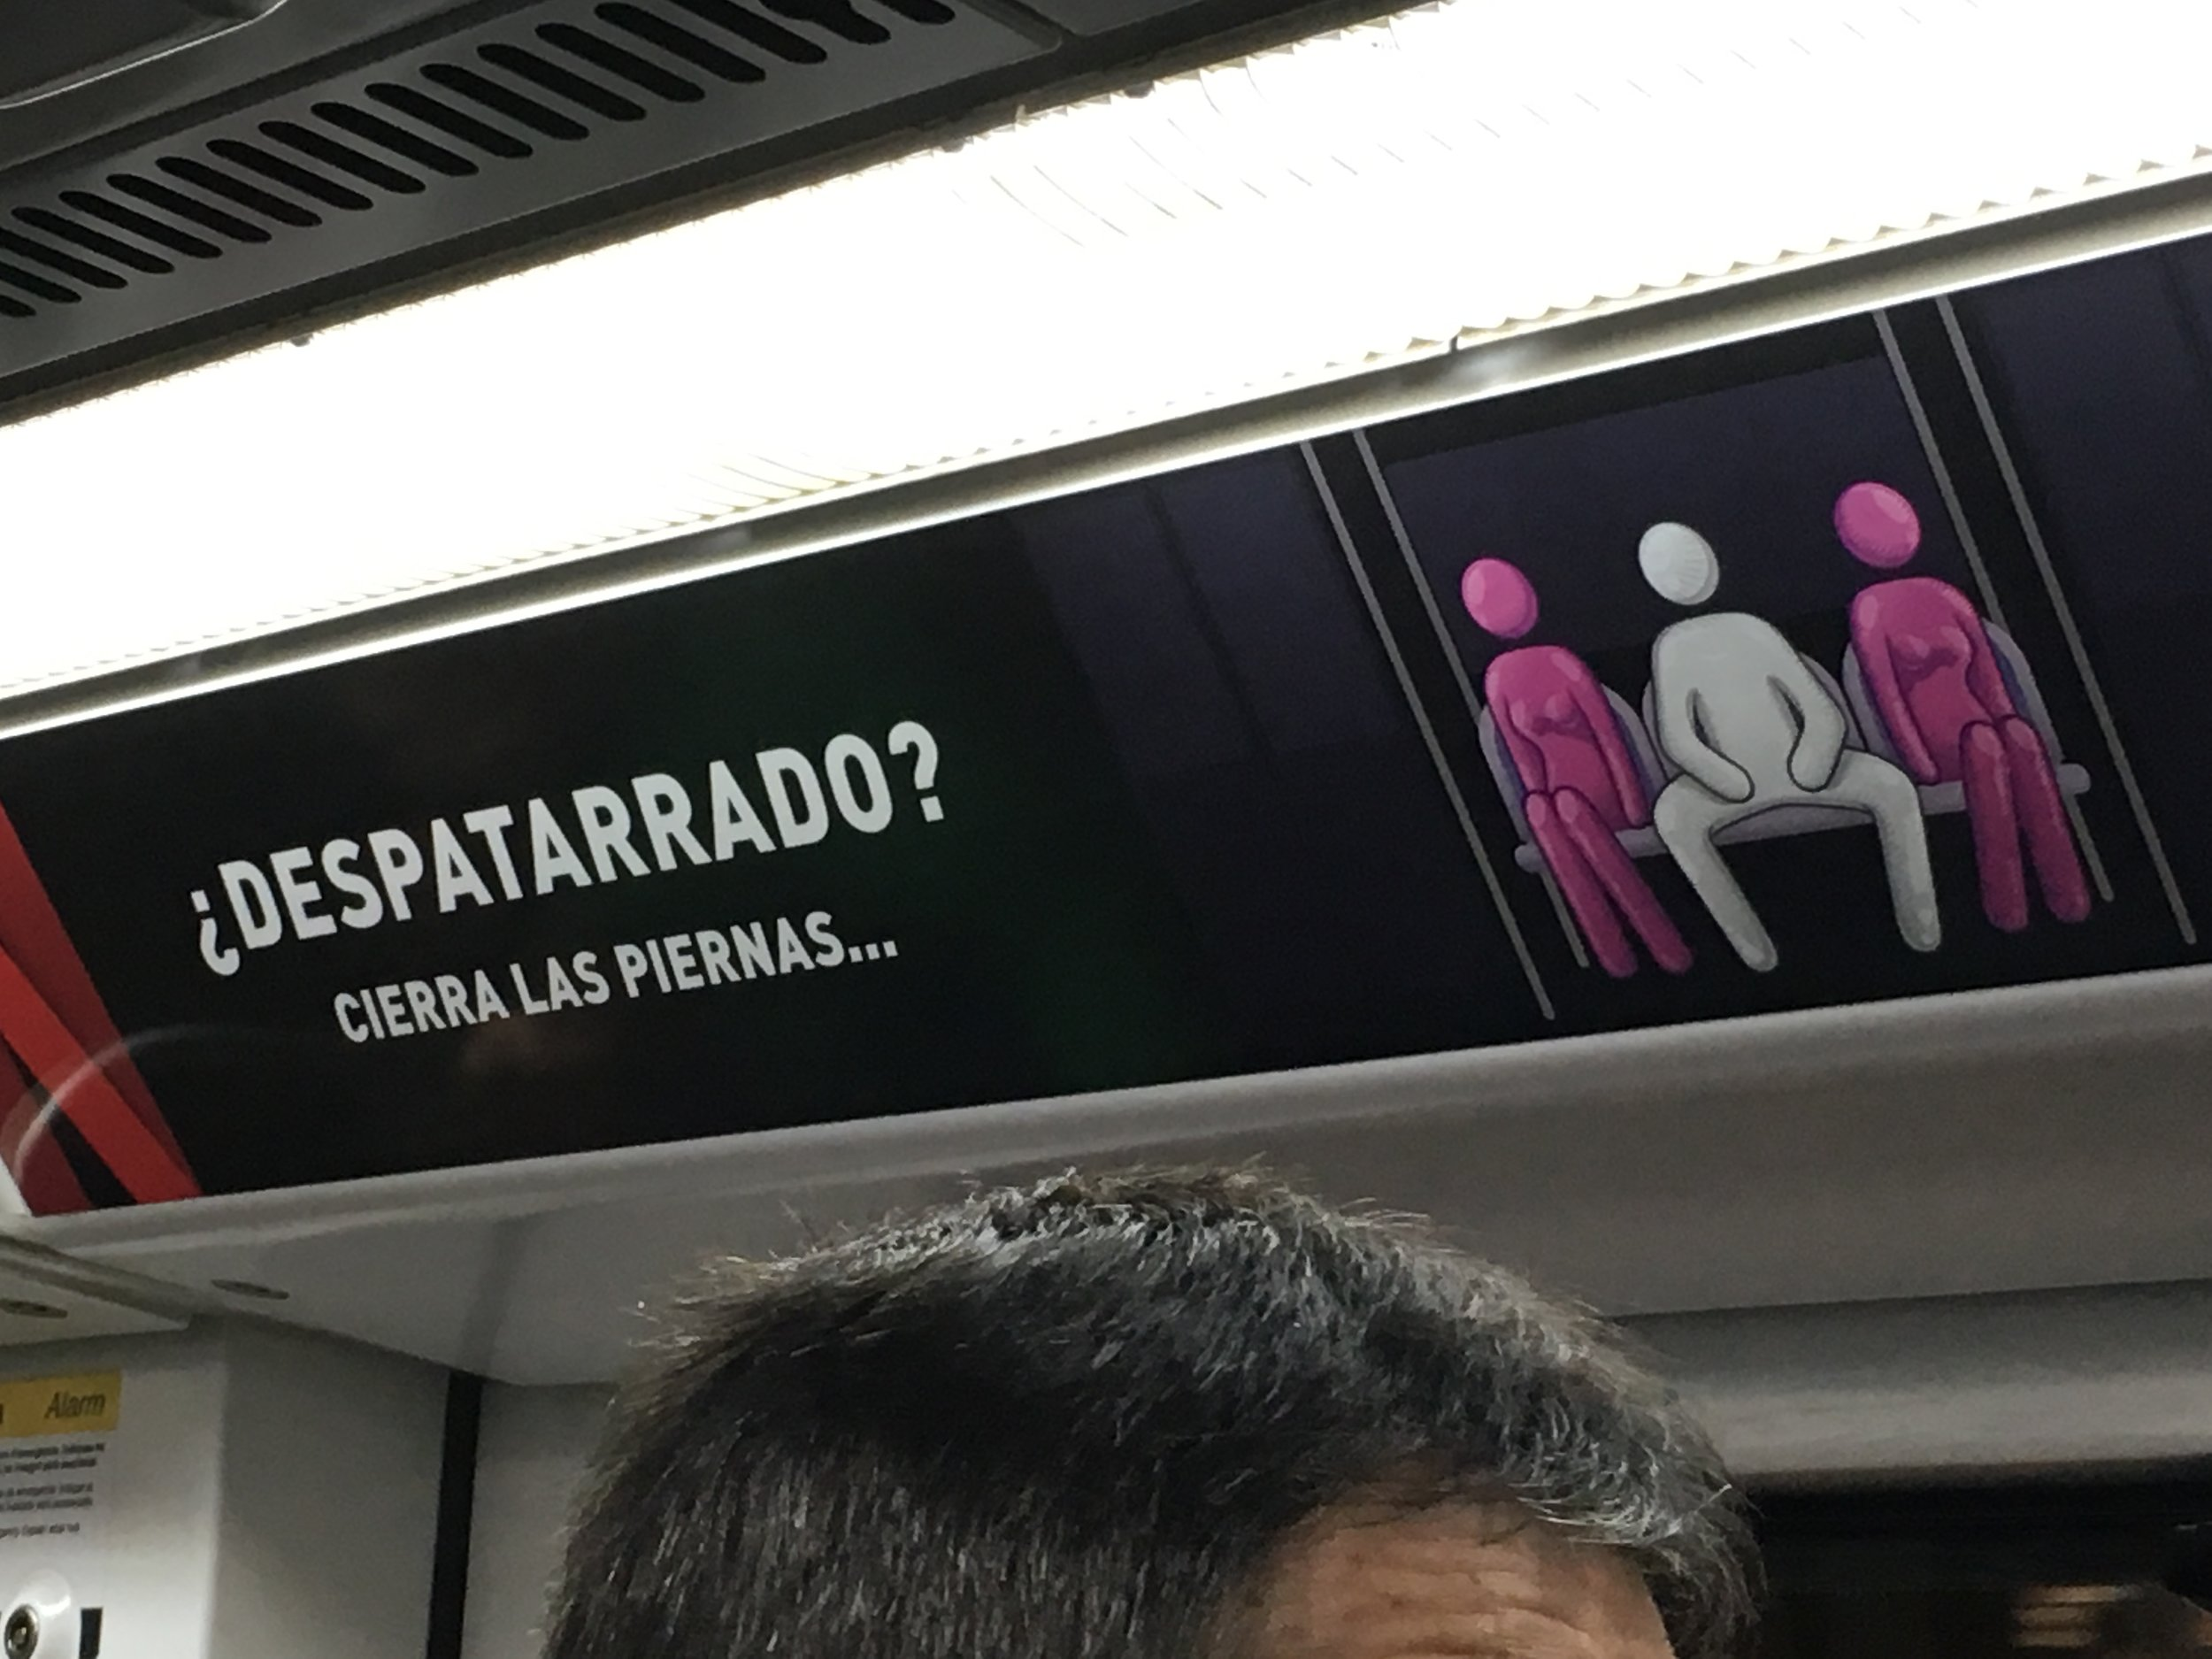 Spanish for close your damn legs - which, ironically, could also be rape culture because we should be allowed to have our legs open